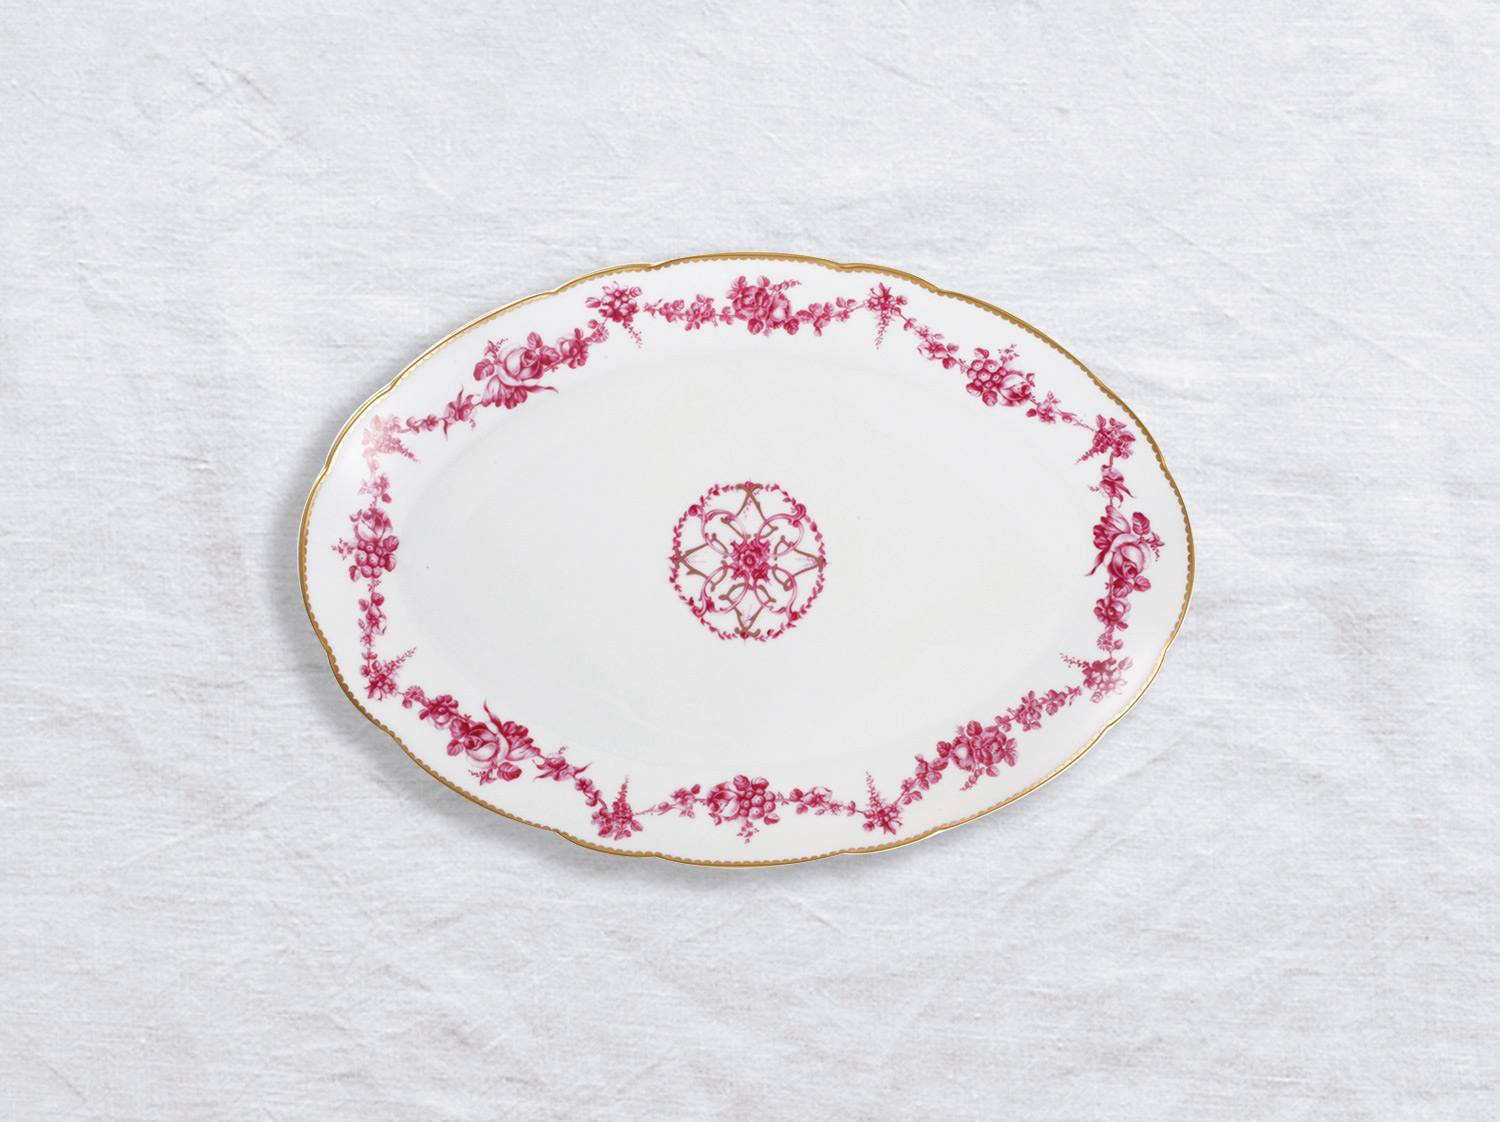 Plat ovale 38 cm en porcelaine de la collection Louis xv Bernardaud